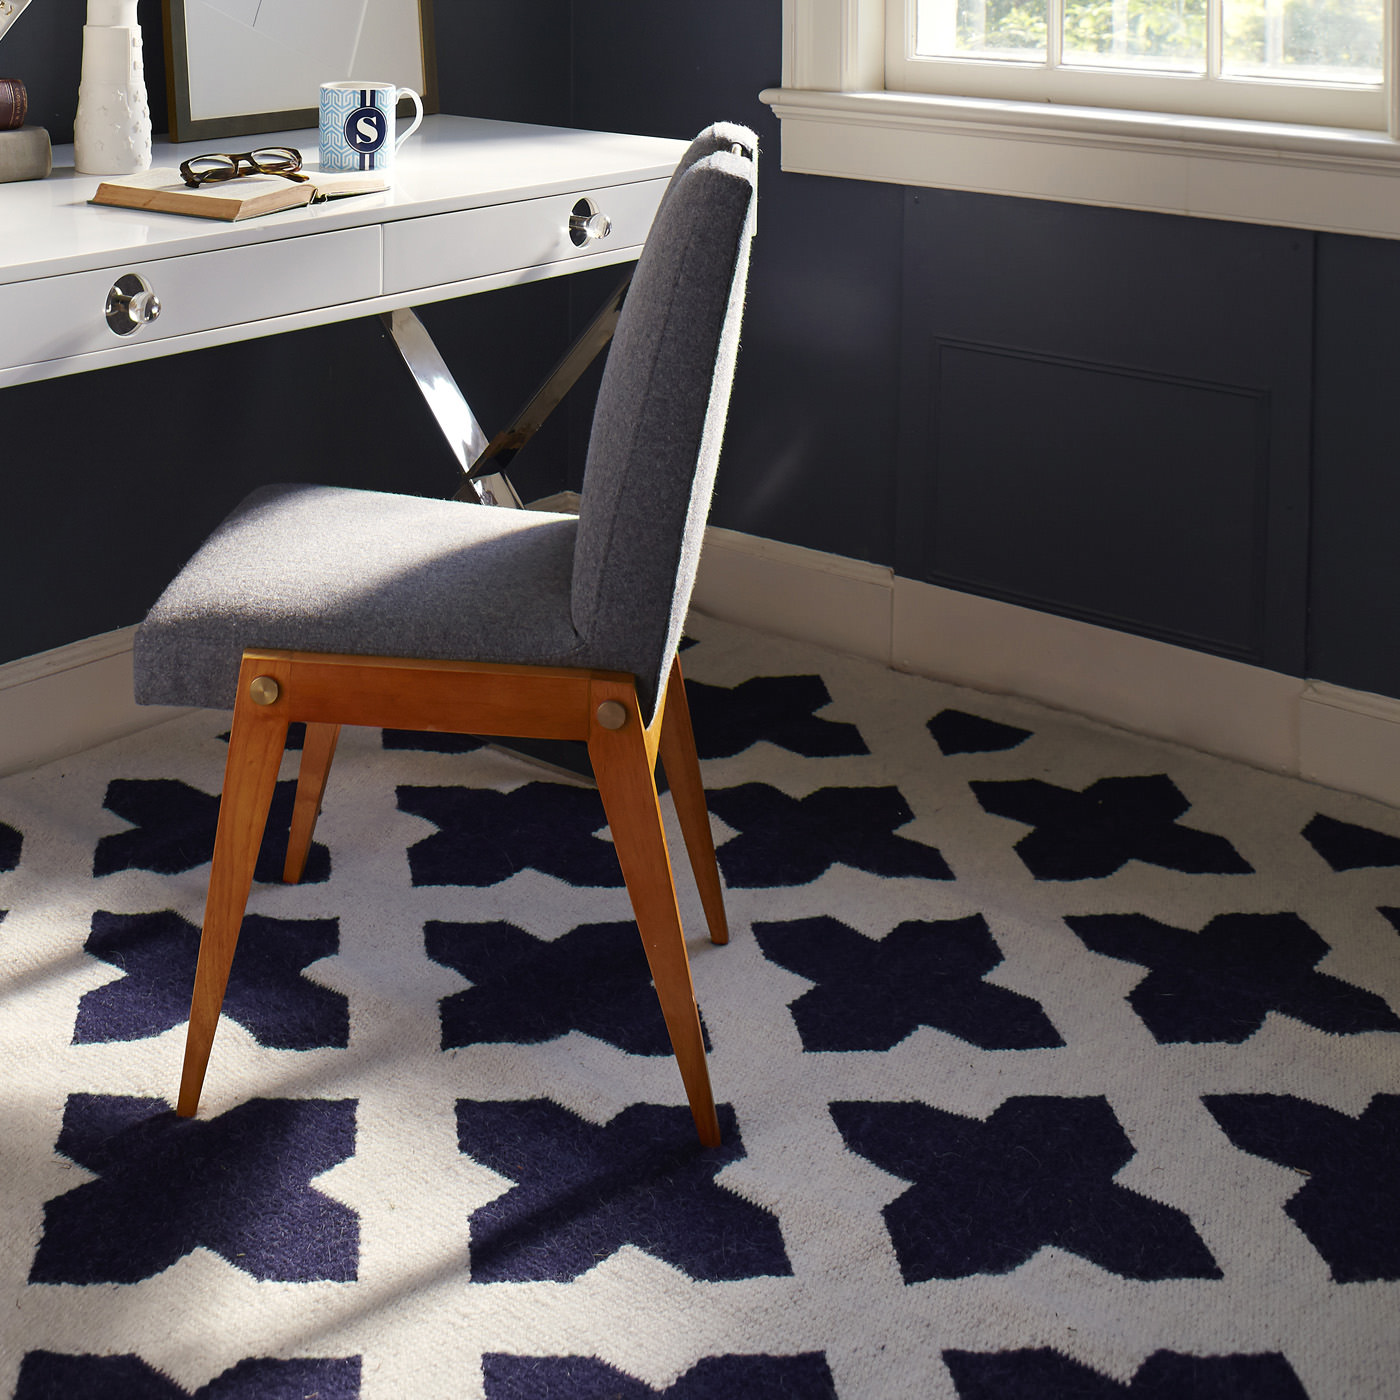 jonathan adler Jonathan Adler: A Flawless Rug Collection Jonathan Adler A Flawles Rug Collection 5